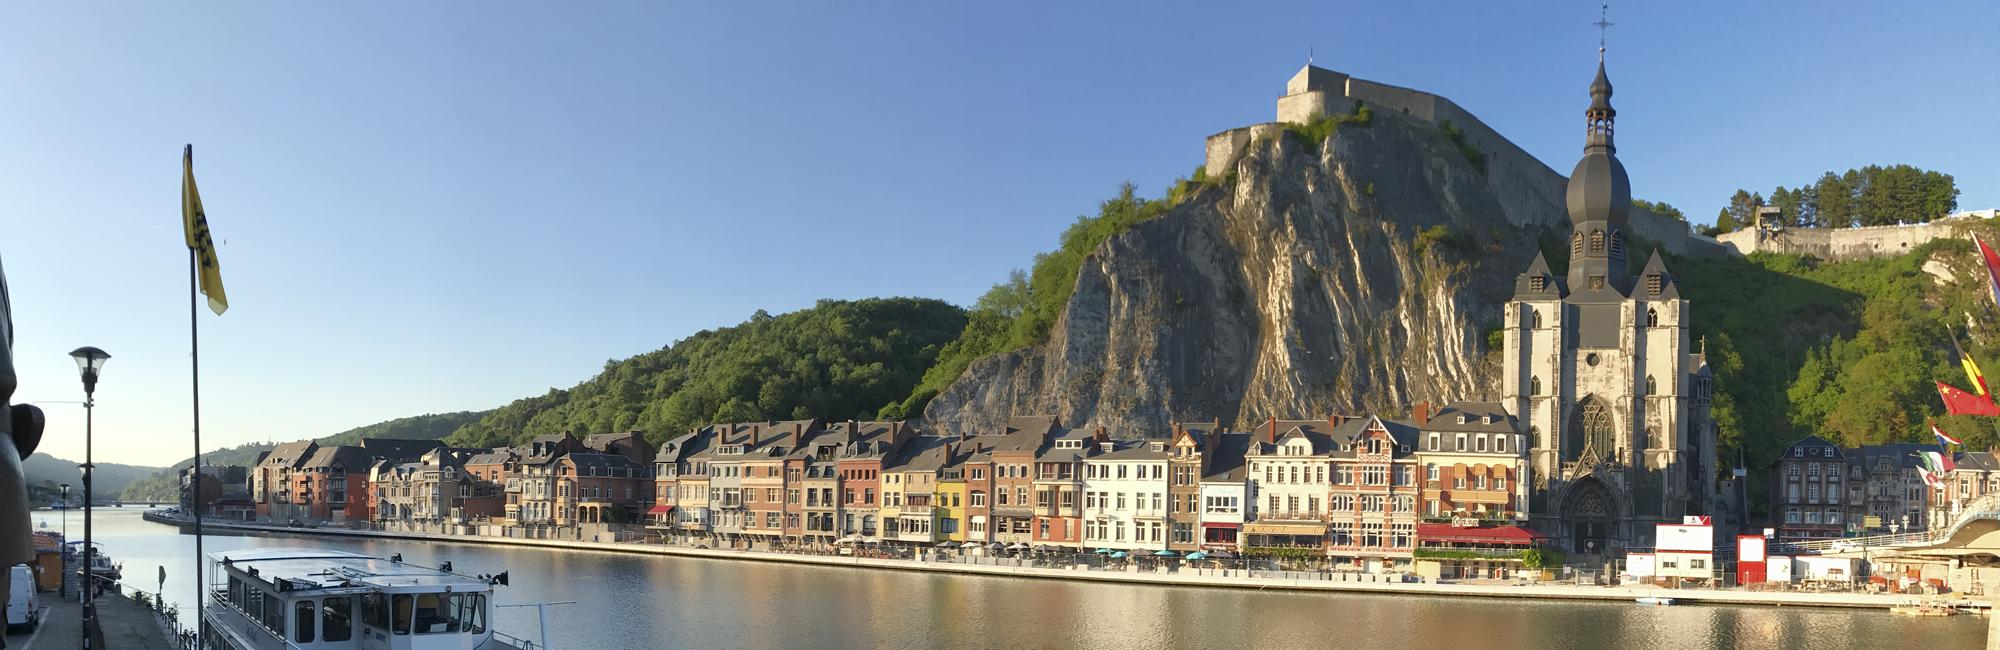 Dutch Bike Tours Cycling holiday Five Country Meuse – Vennbahn Combination Bicycle Holiday